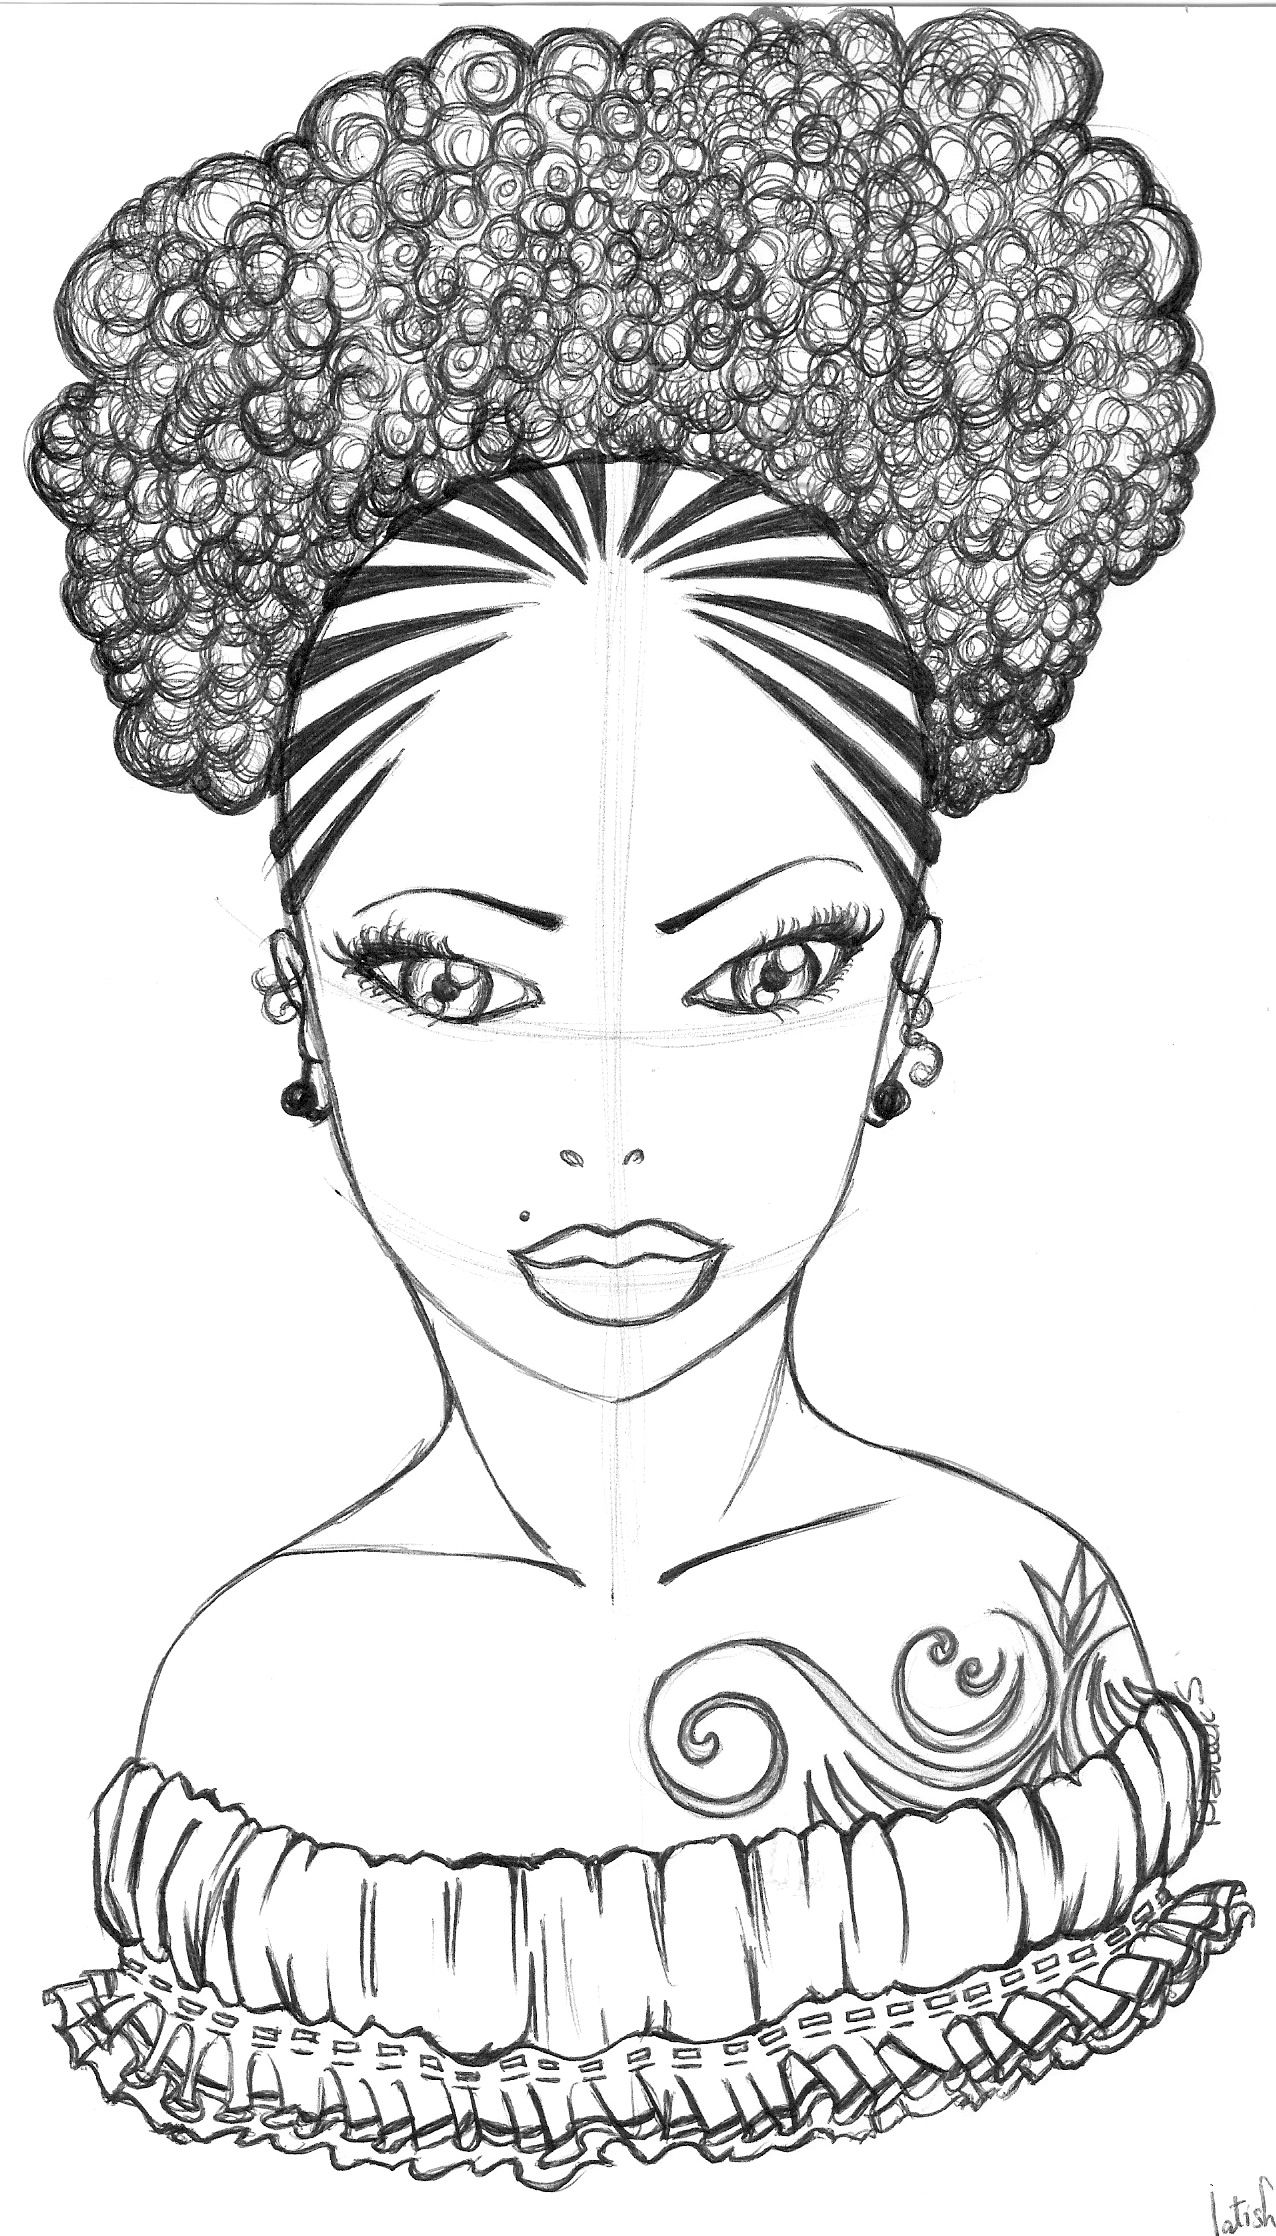 Gladys African drawings, Coloring pages, Black women art